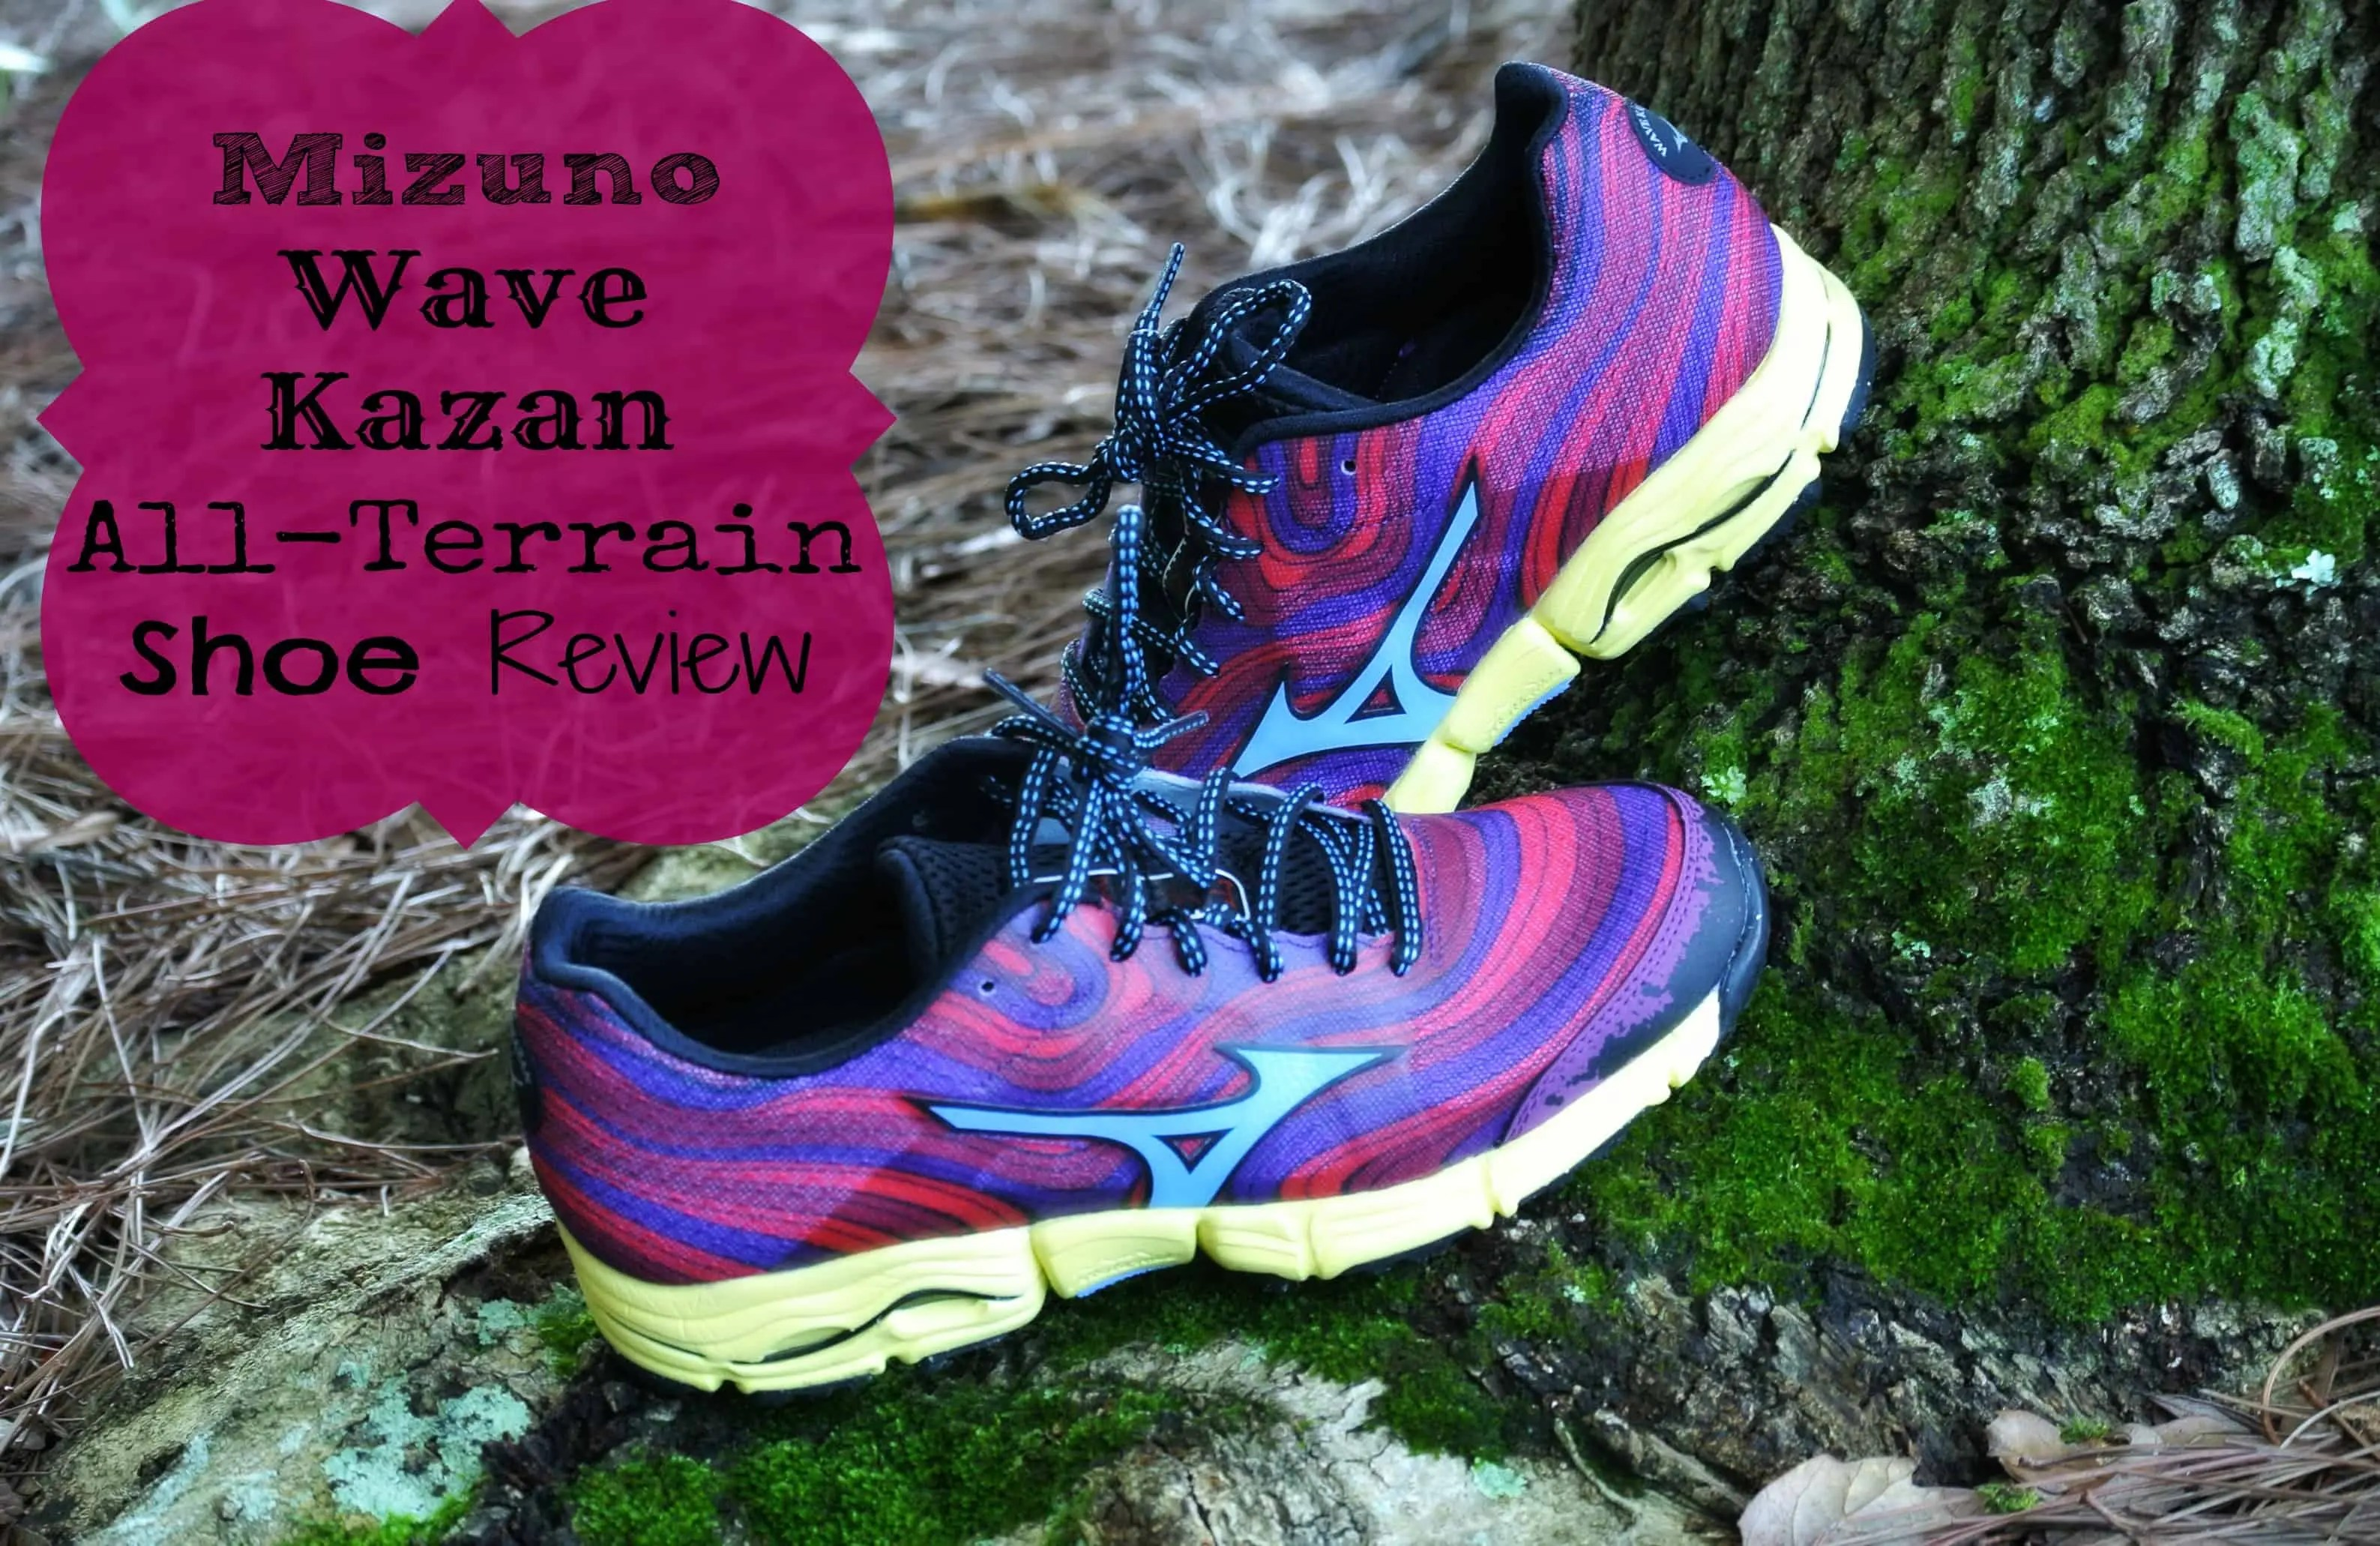 Mizuno Wave Kazan Review